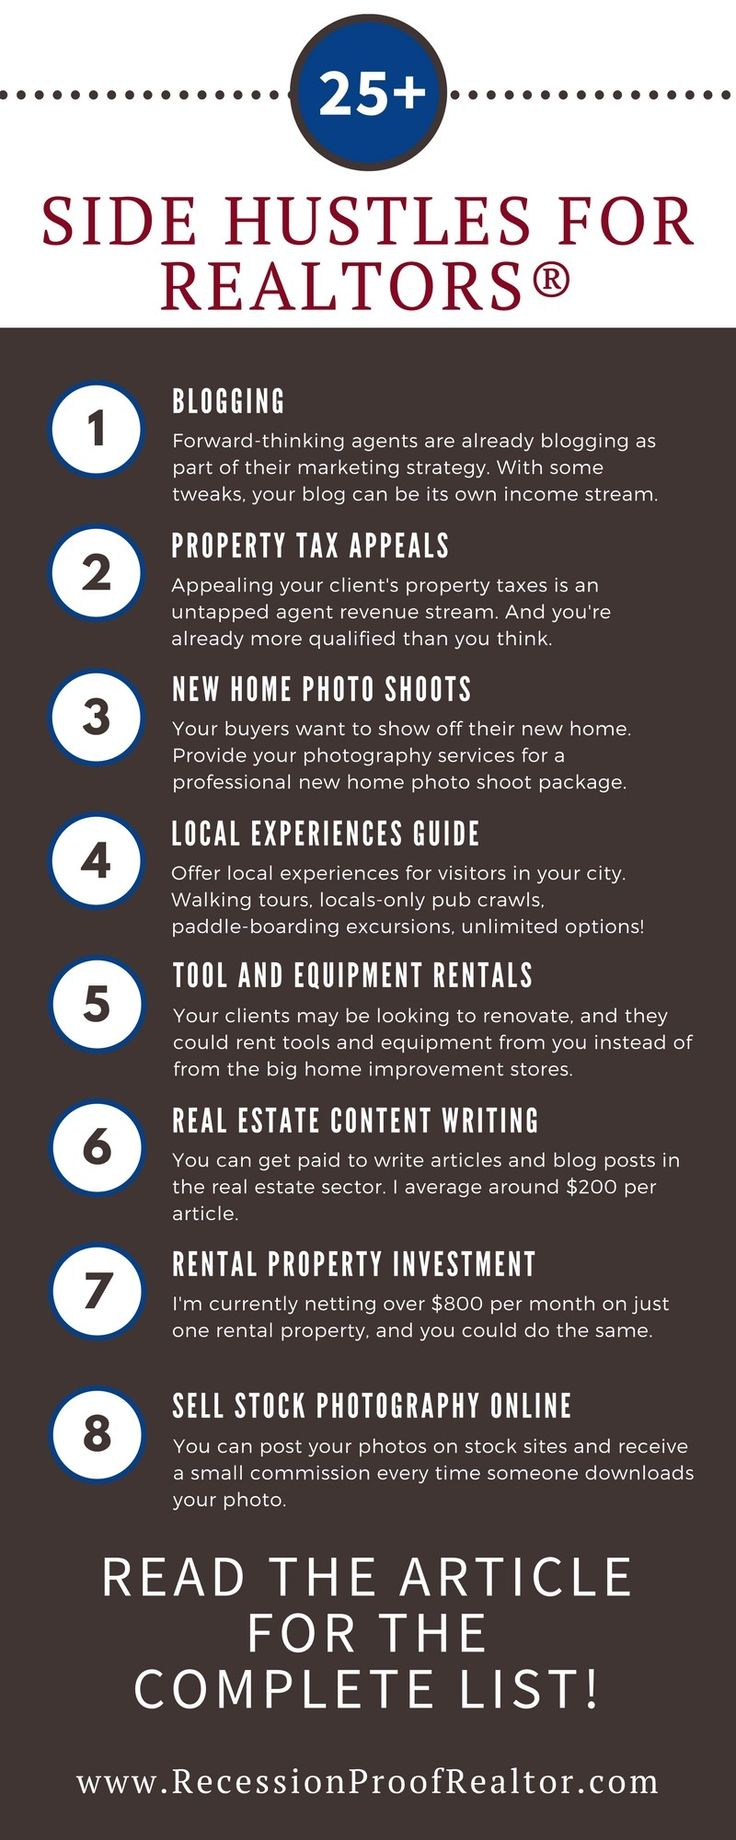 Impressive list of over 25 ways to make money as a real estate agent